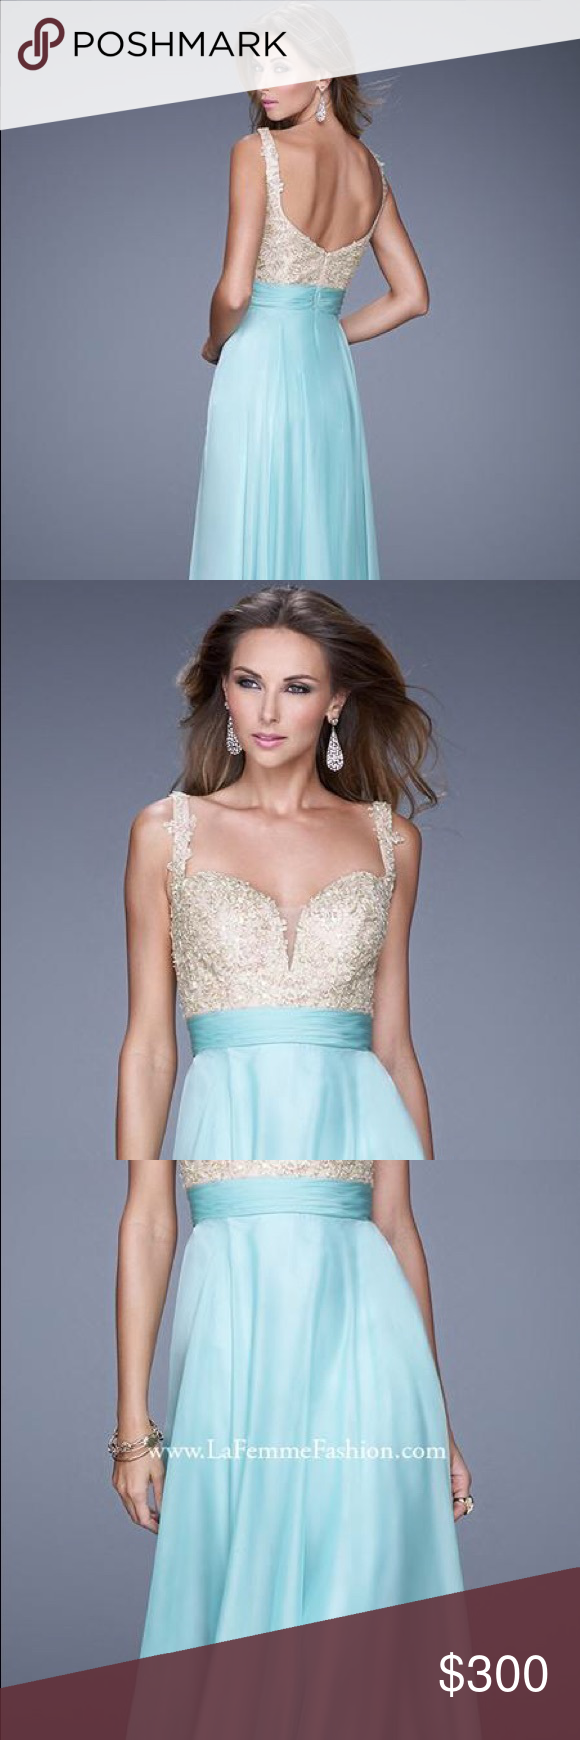 Dorable Prom Dress Shops In Lincoln Elaboration - All Wedding ...